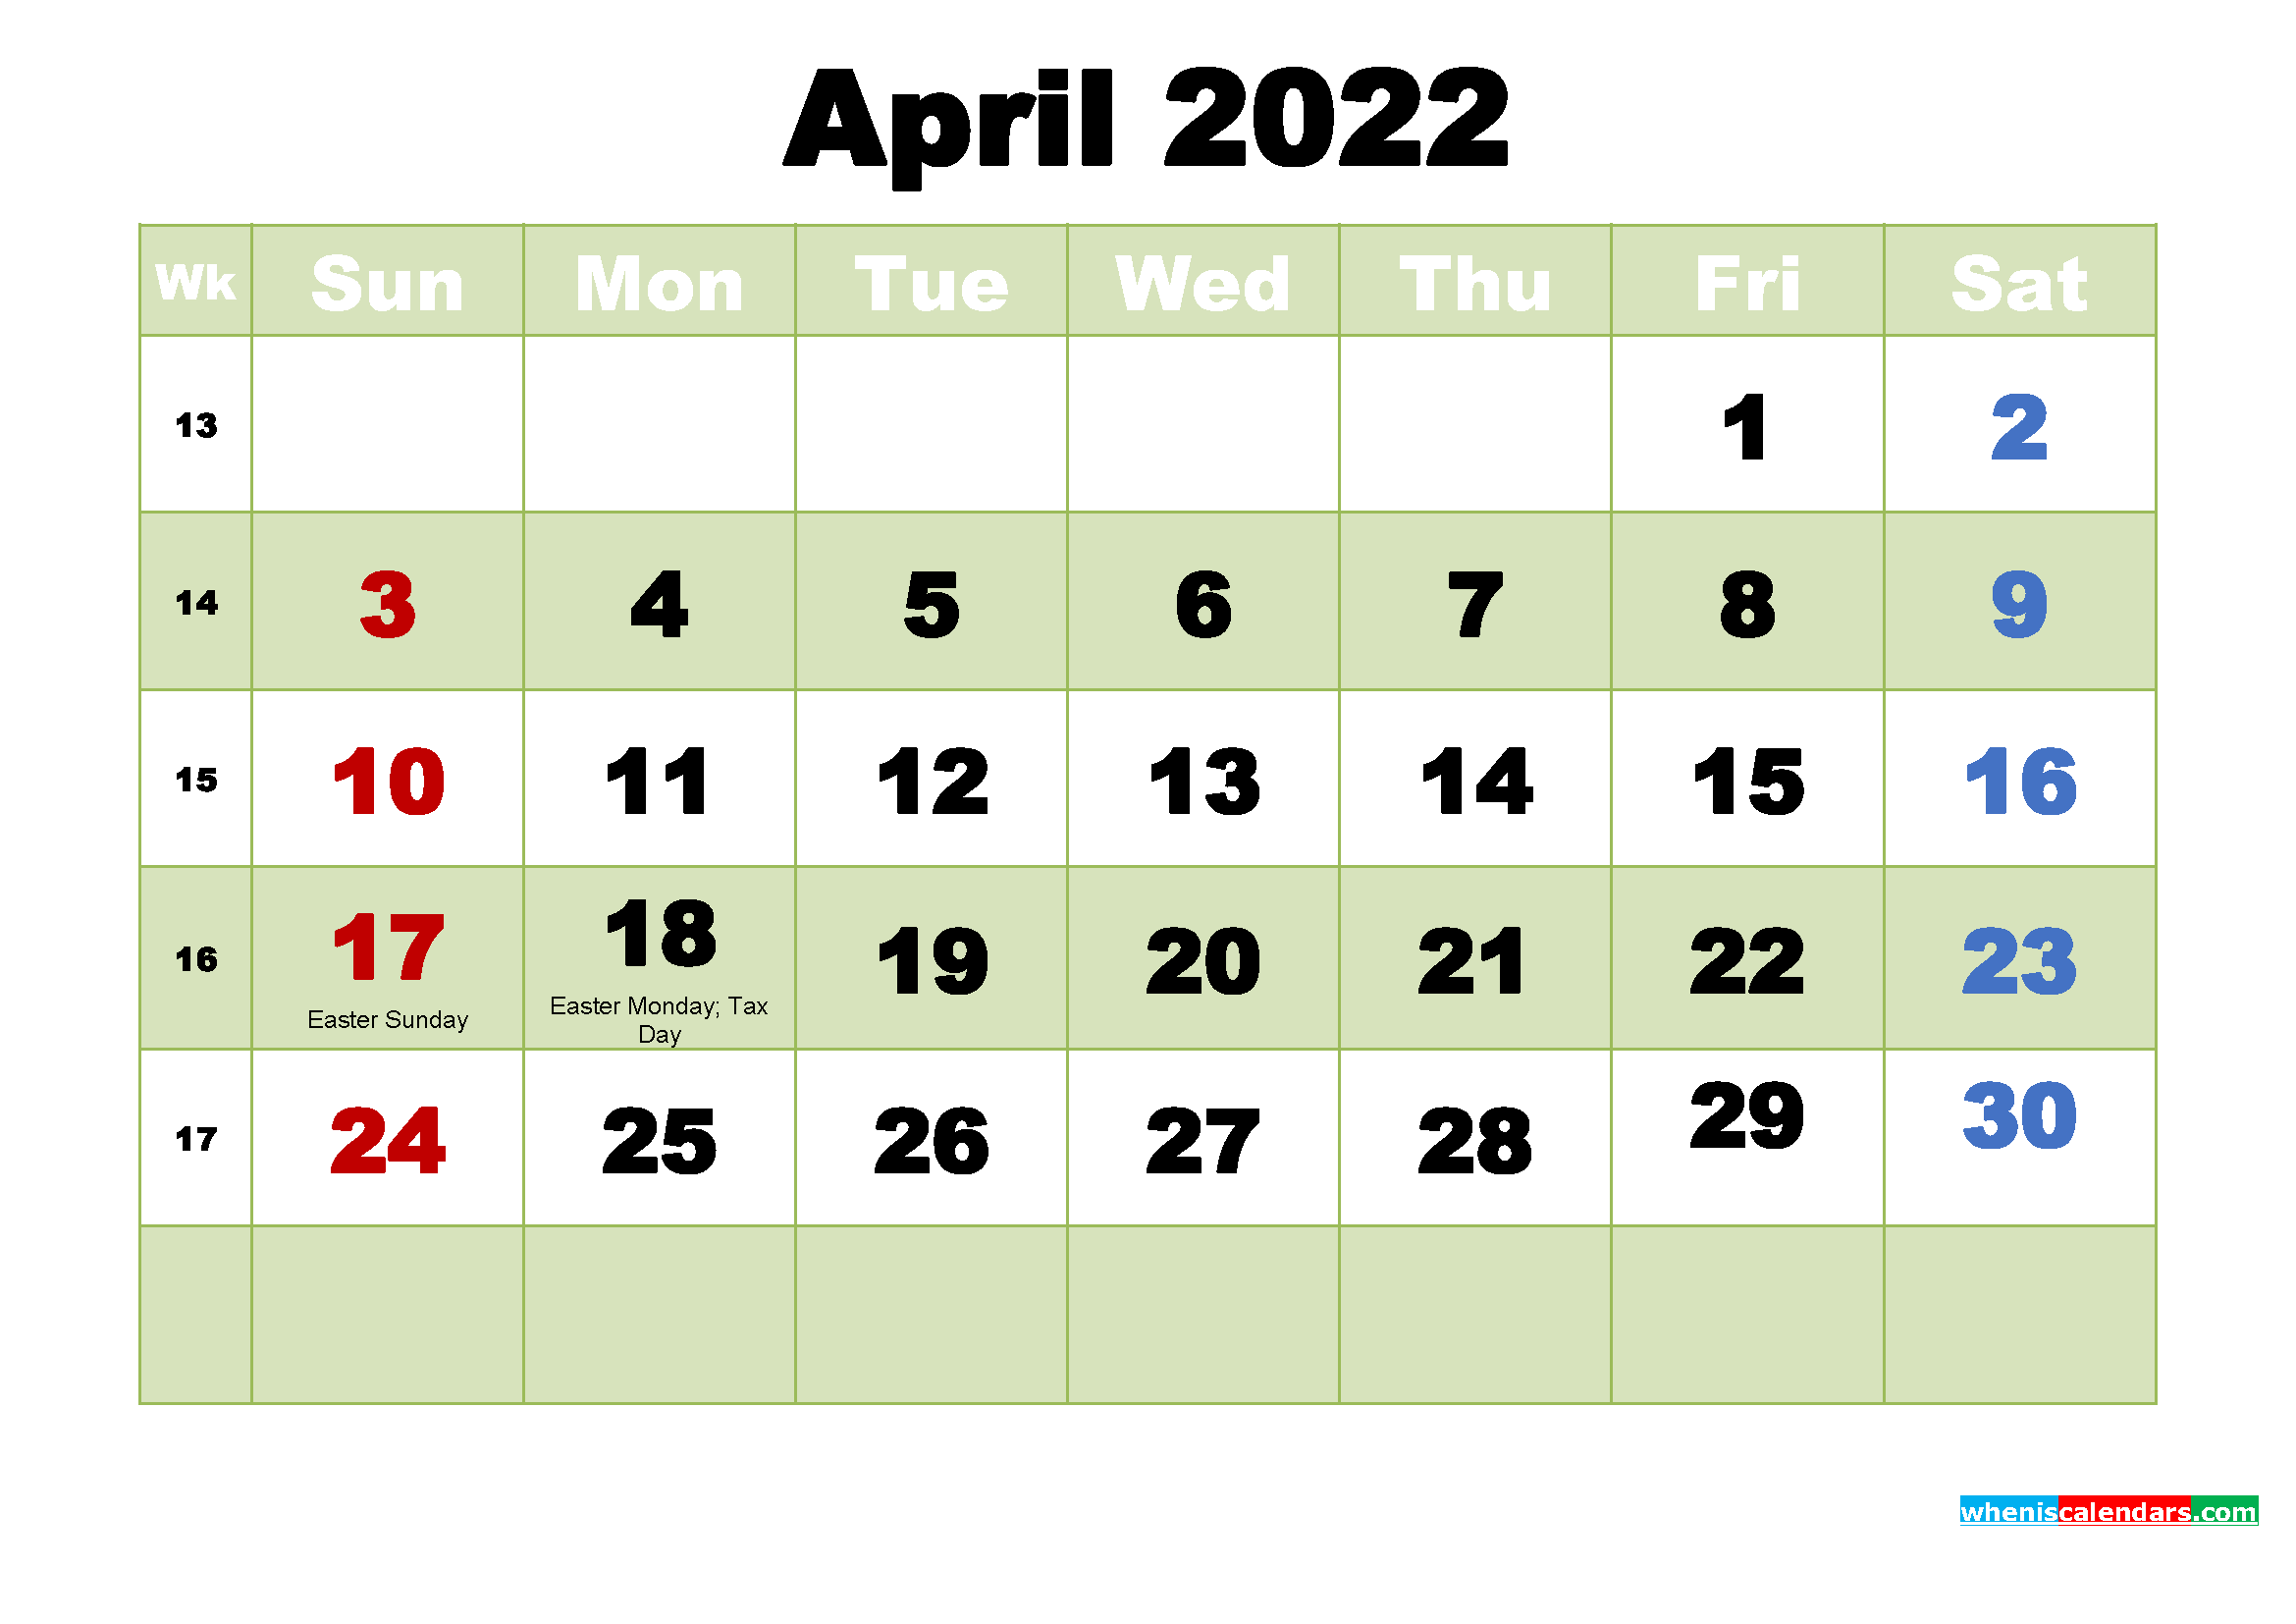 Printable Calendar for April 2022